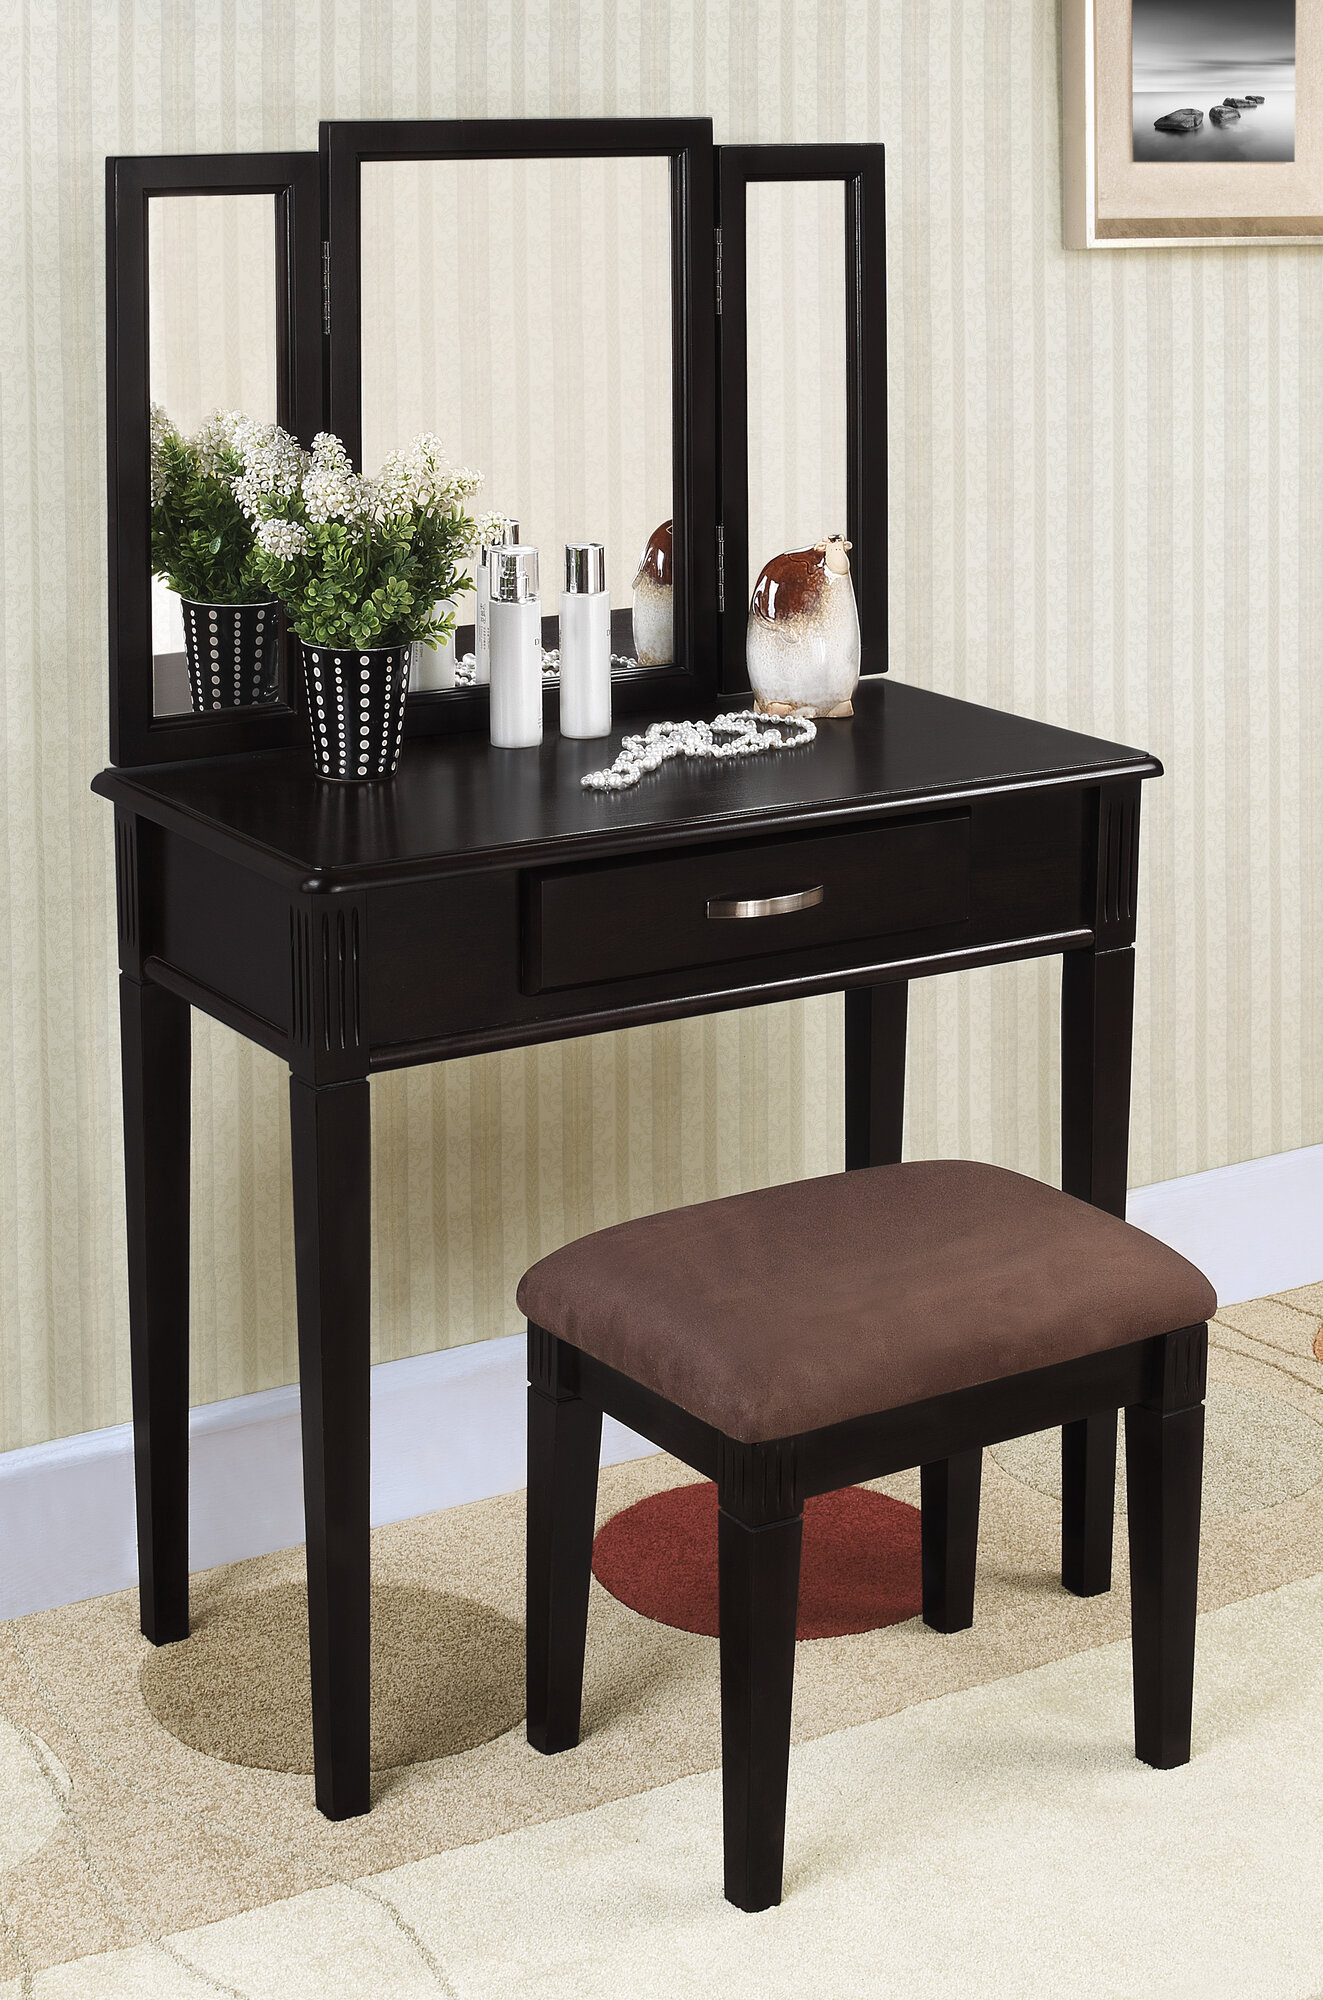 Williams Tri Folding Mirror Black Wood Vanity Set Make Up Table Dresser W Sto